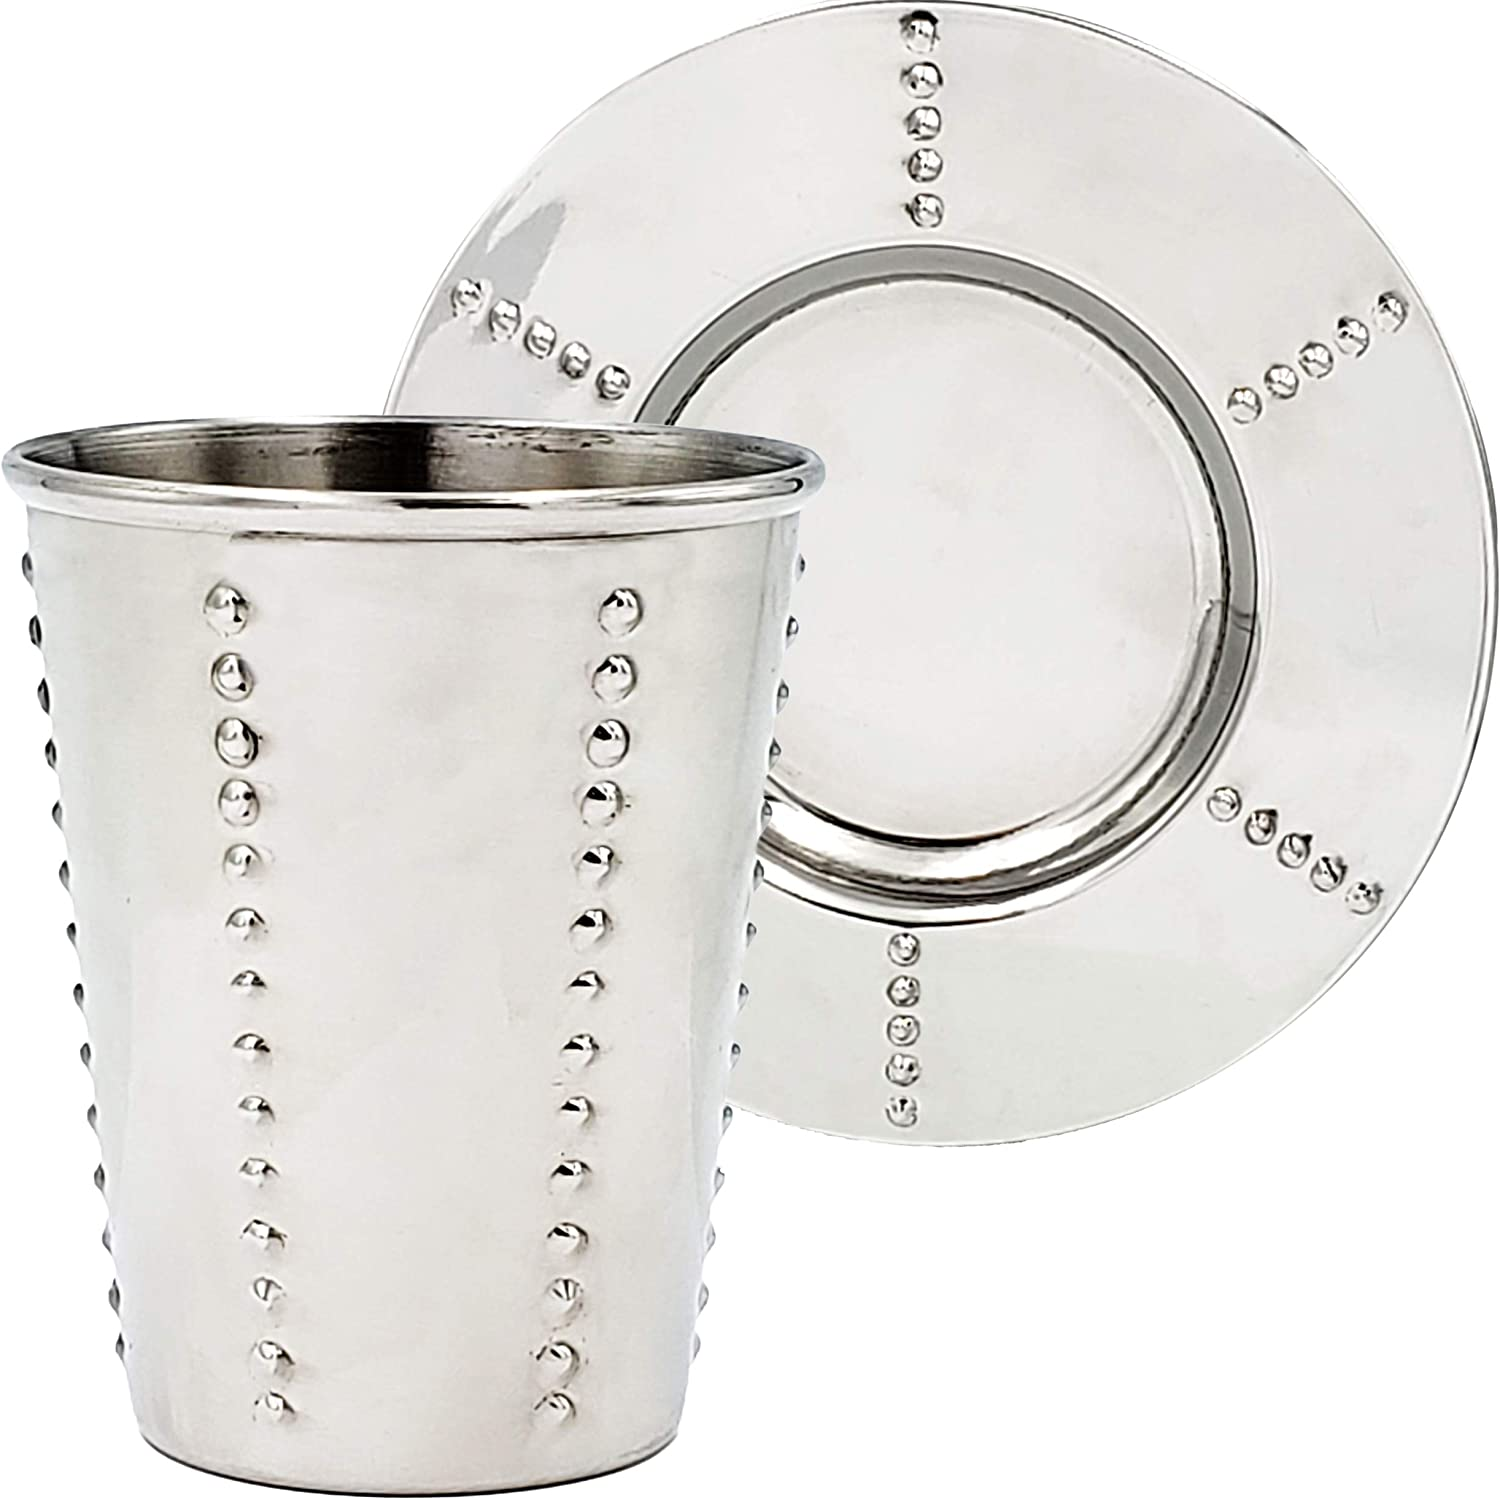 Kiddush Cup Stainless Steel with Max 74% OFF Matching Shabbos H Saucer For outlet